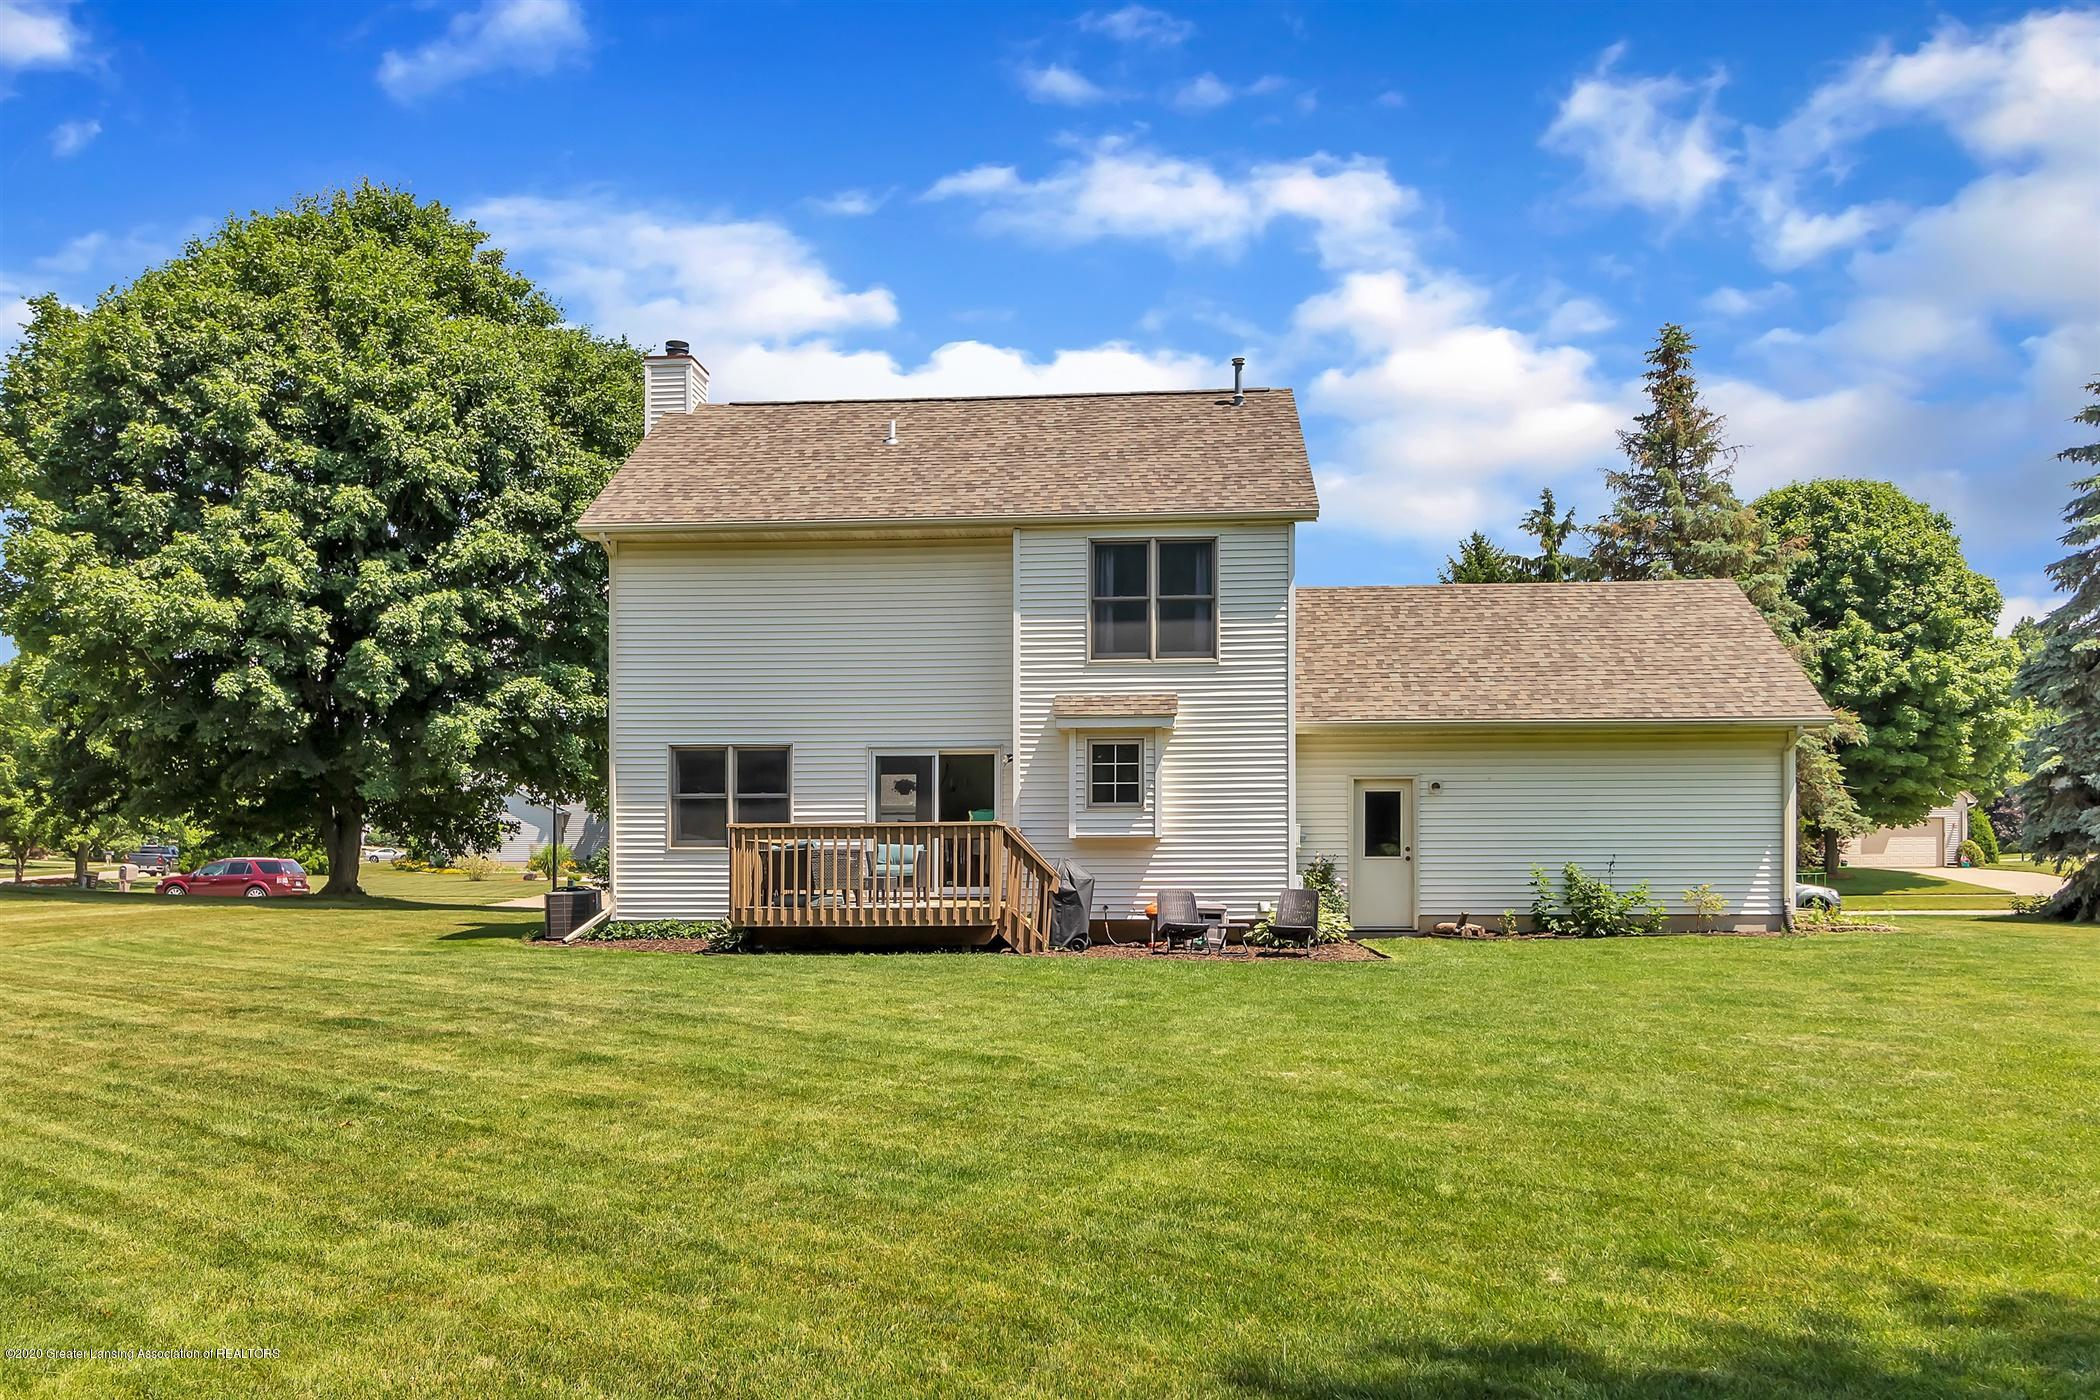 2945 Whistlewood Way - 35-2945Whistlewood-WindowStill-Real - 35